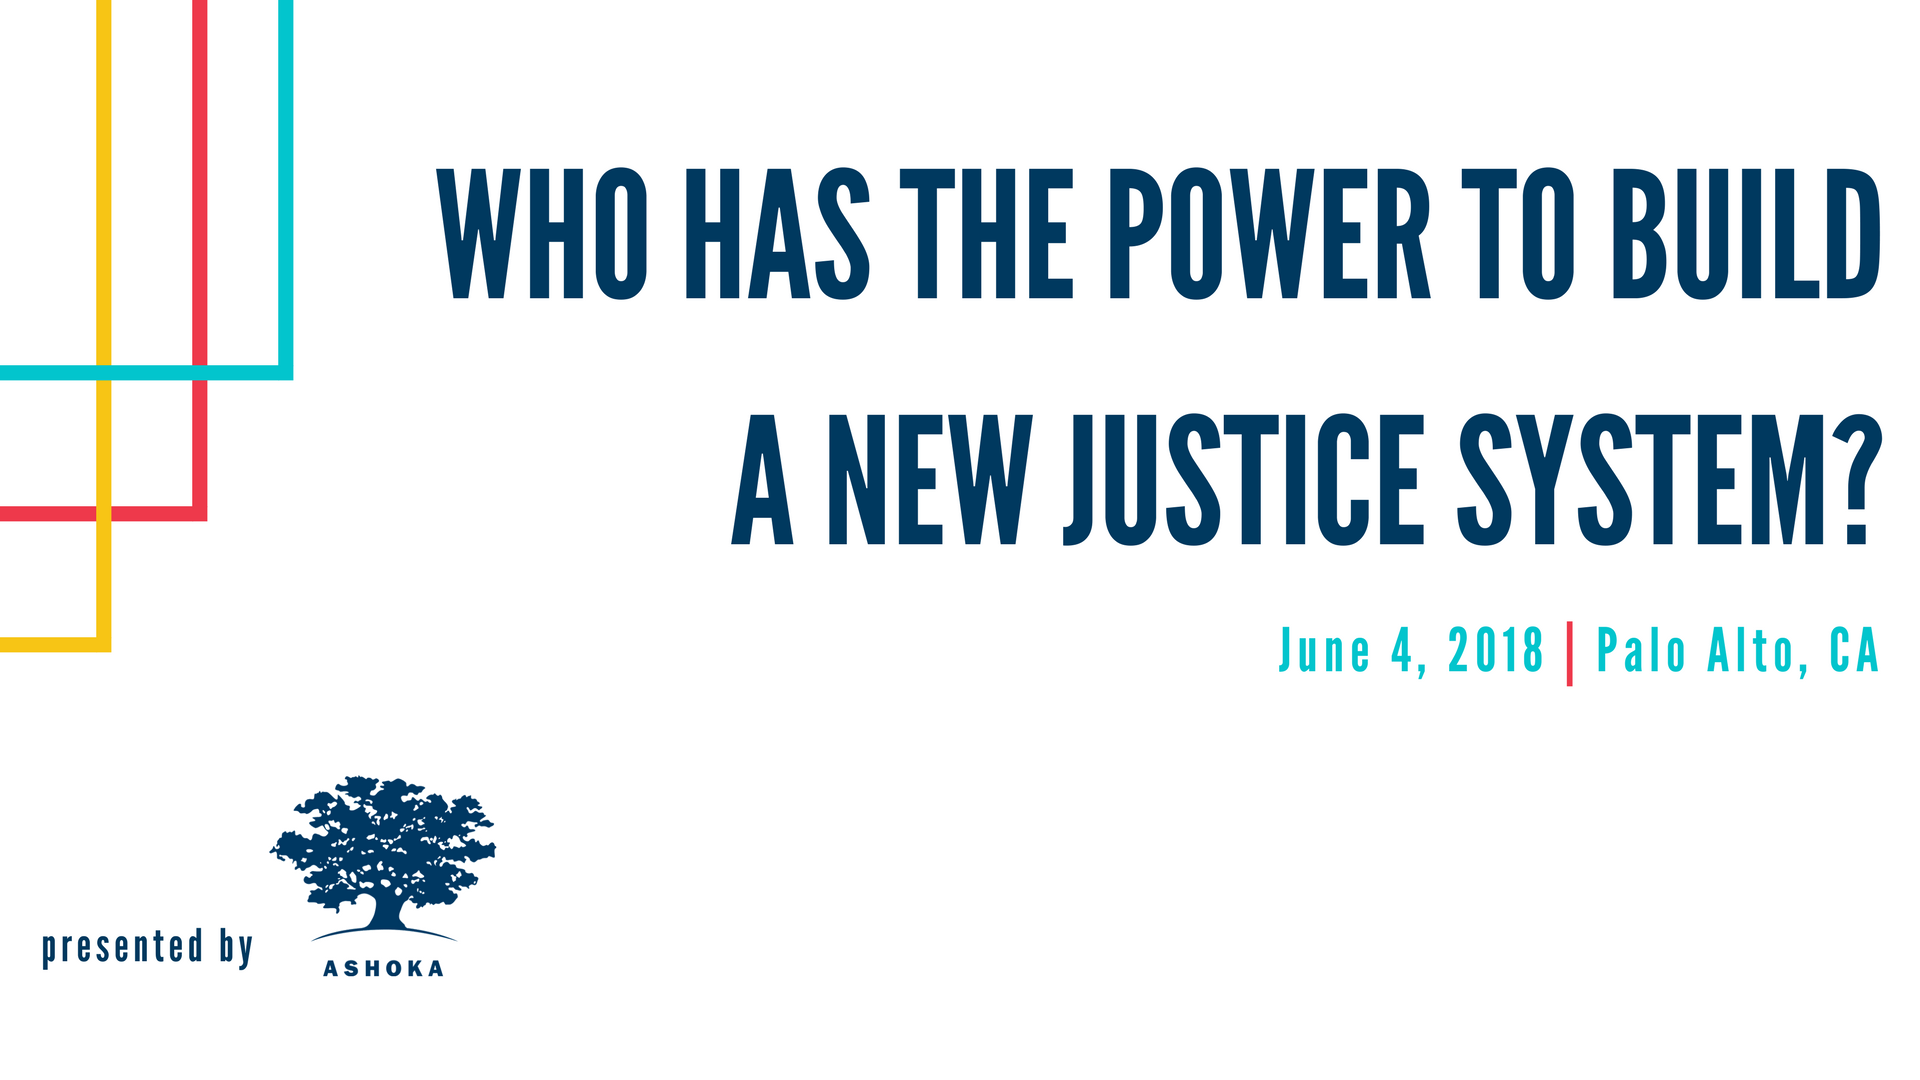 Who has the power to build a new justice system?